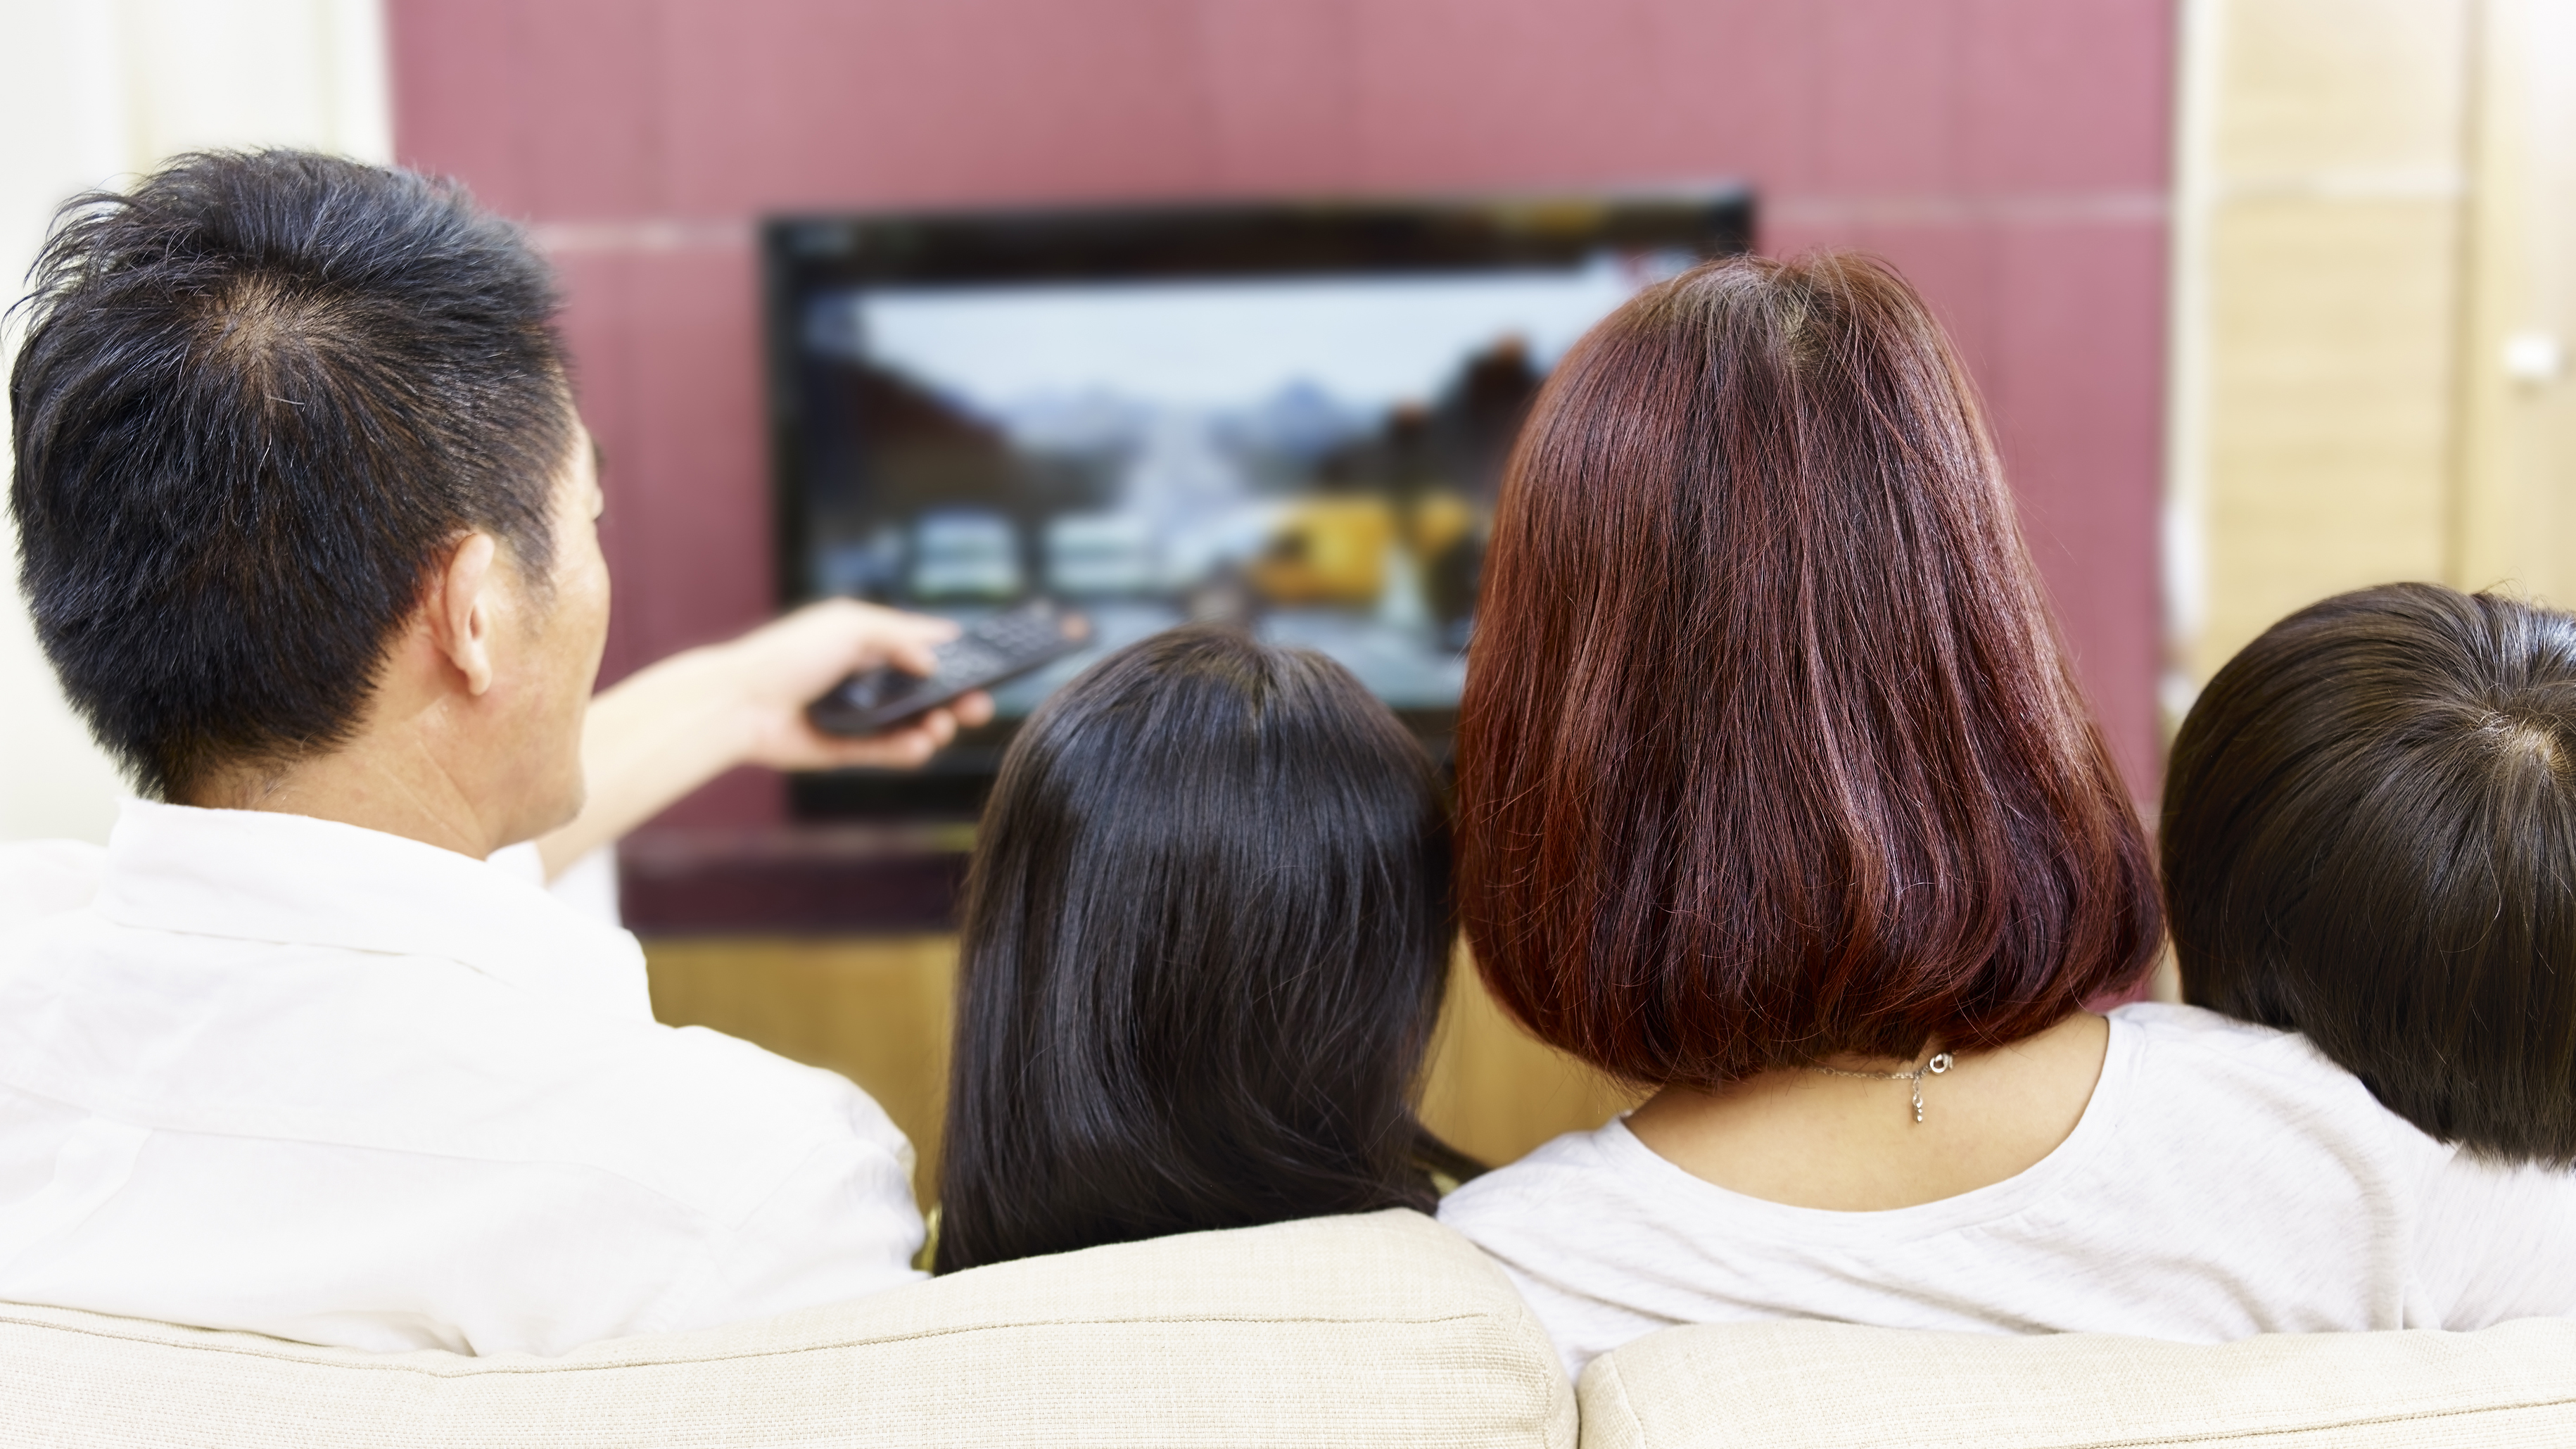 Family watching TV and using a personal on demand TV service